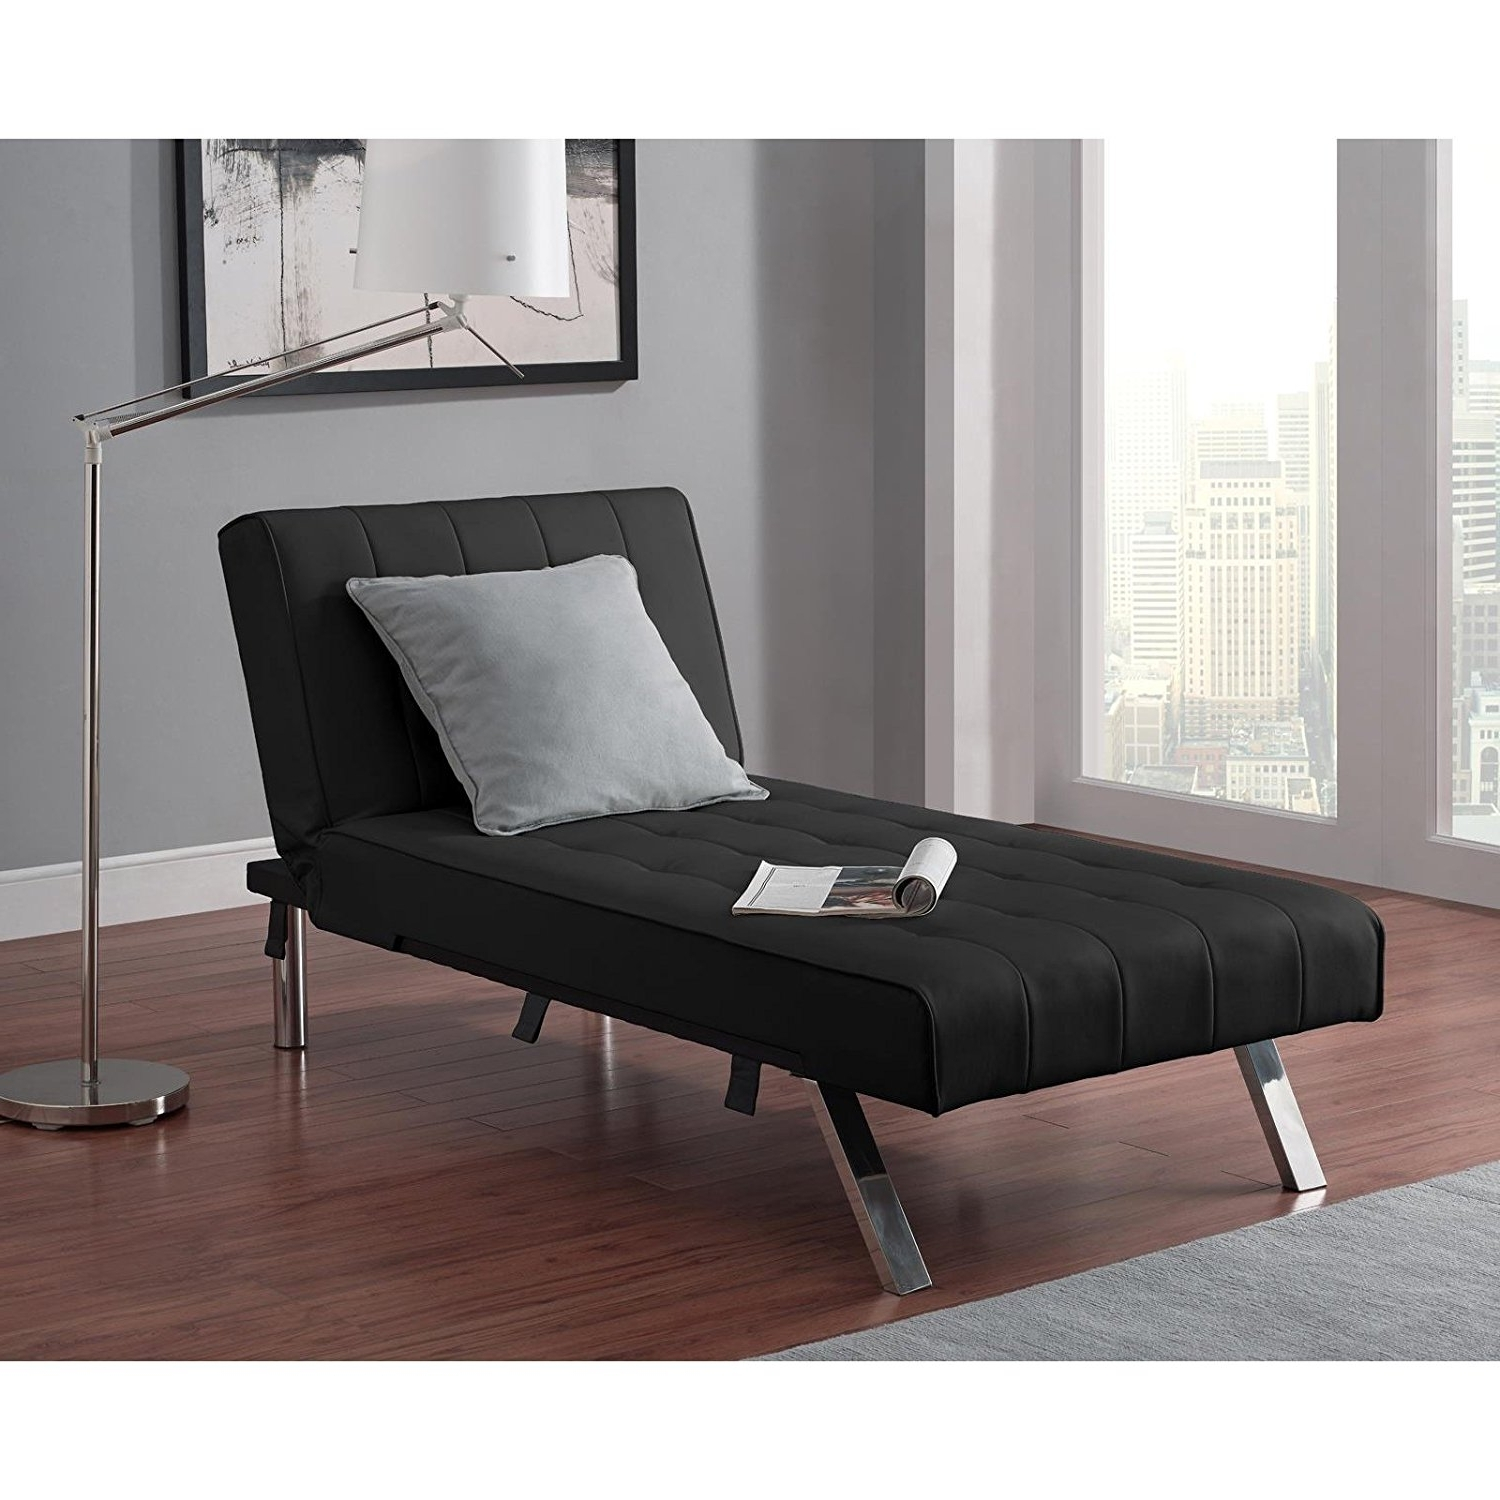 Best And Newest Amazon: Emily Futon With Chaise Lounger Super Bonus Set Black Within Convertible Chaise Lounges (View 2 of 15)